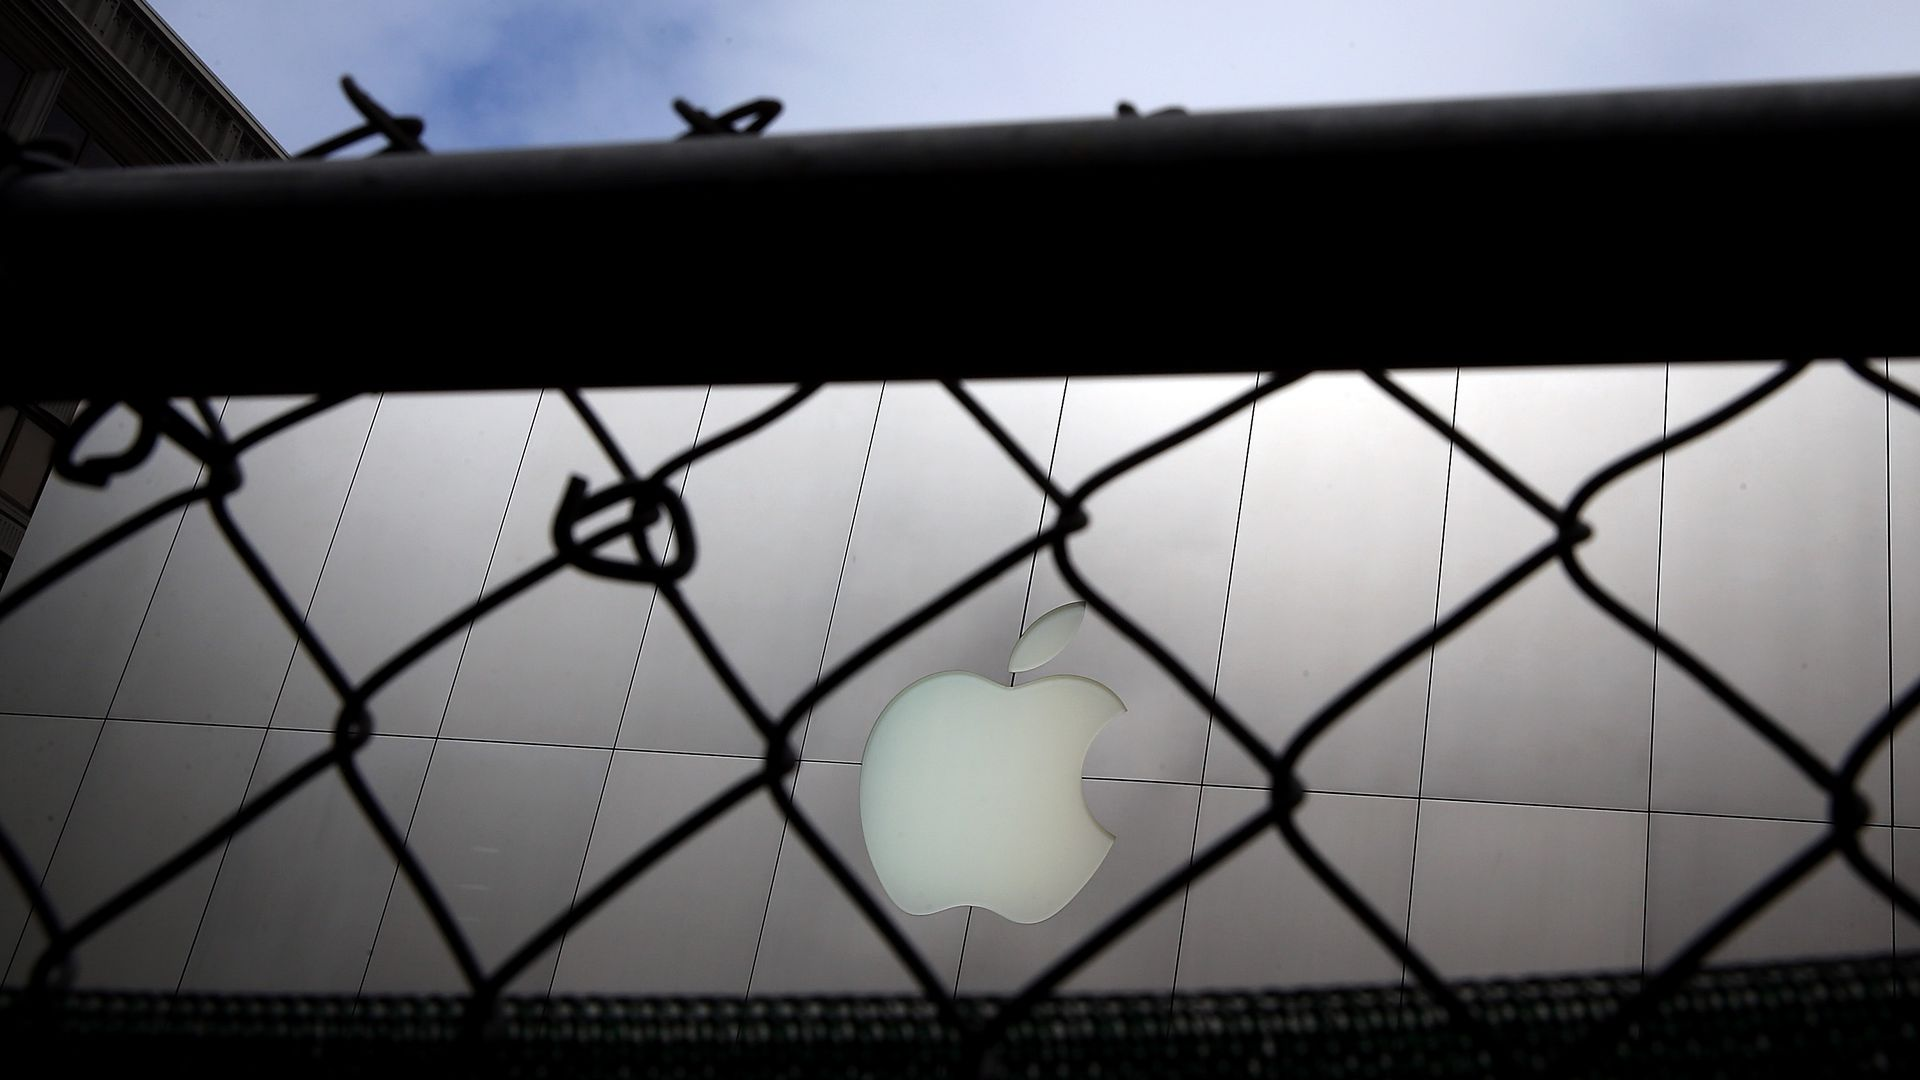 An image of an Apple store behind a chain link fence